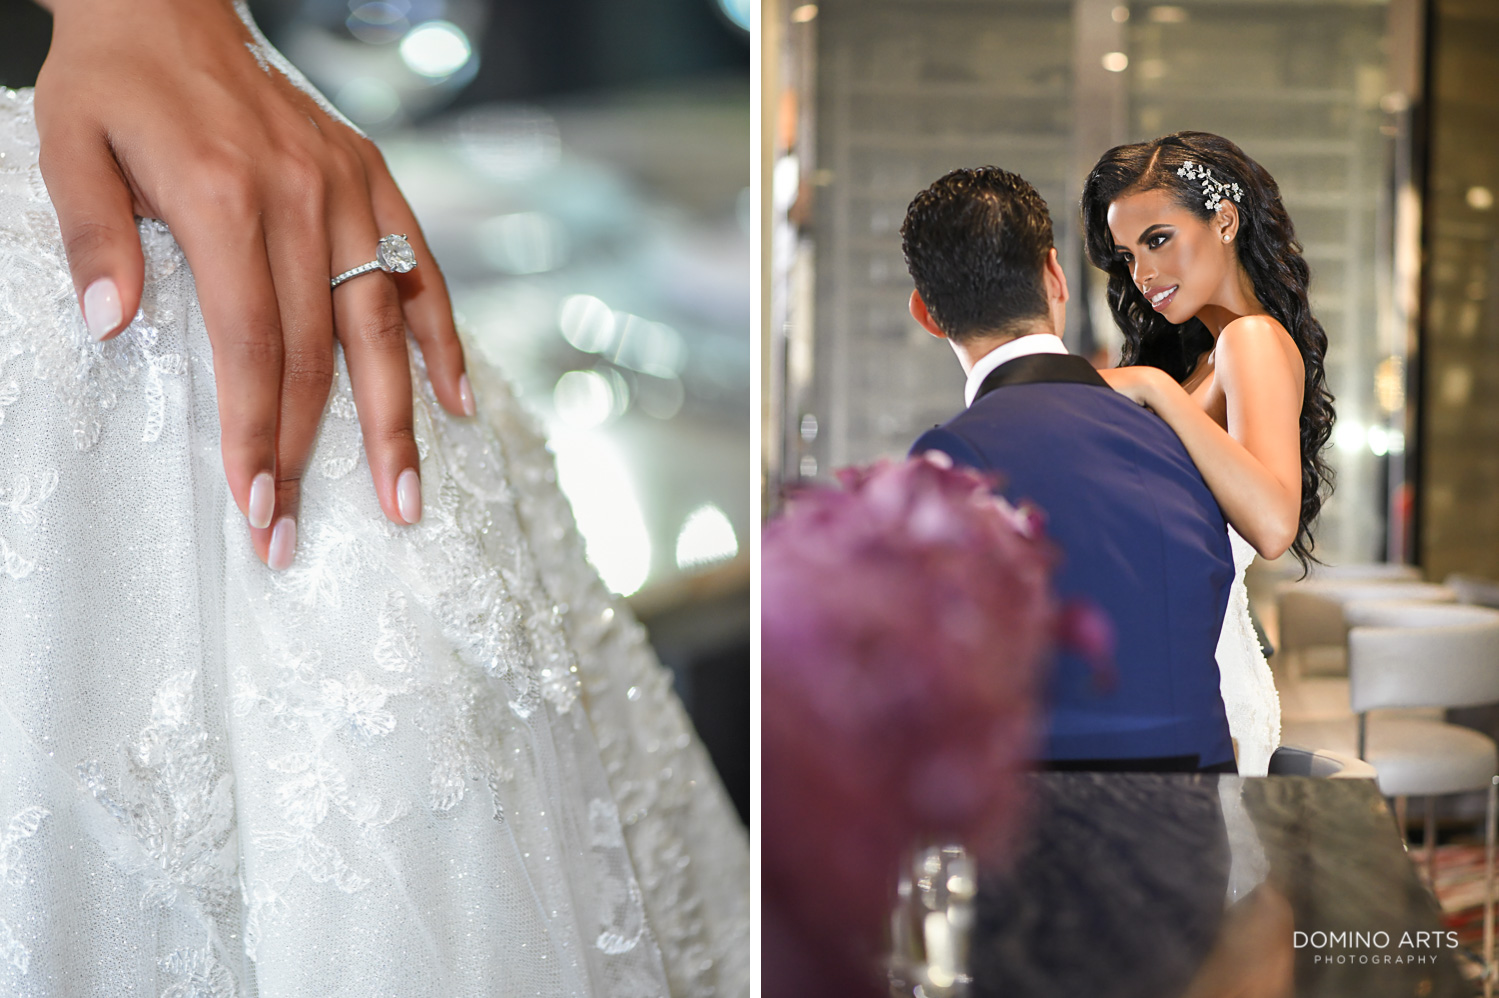 Fashion wedding pictures of bride and groom and ring at The St. Regis Bal Harbour